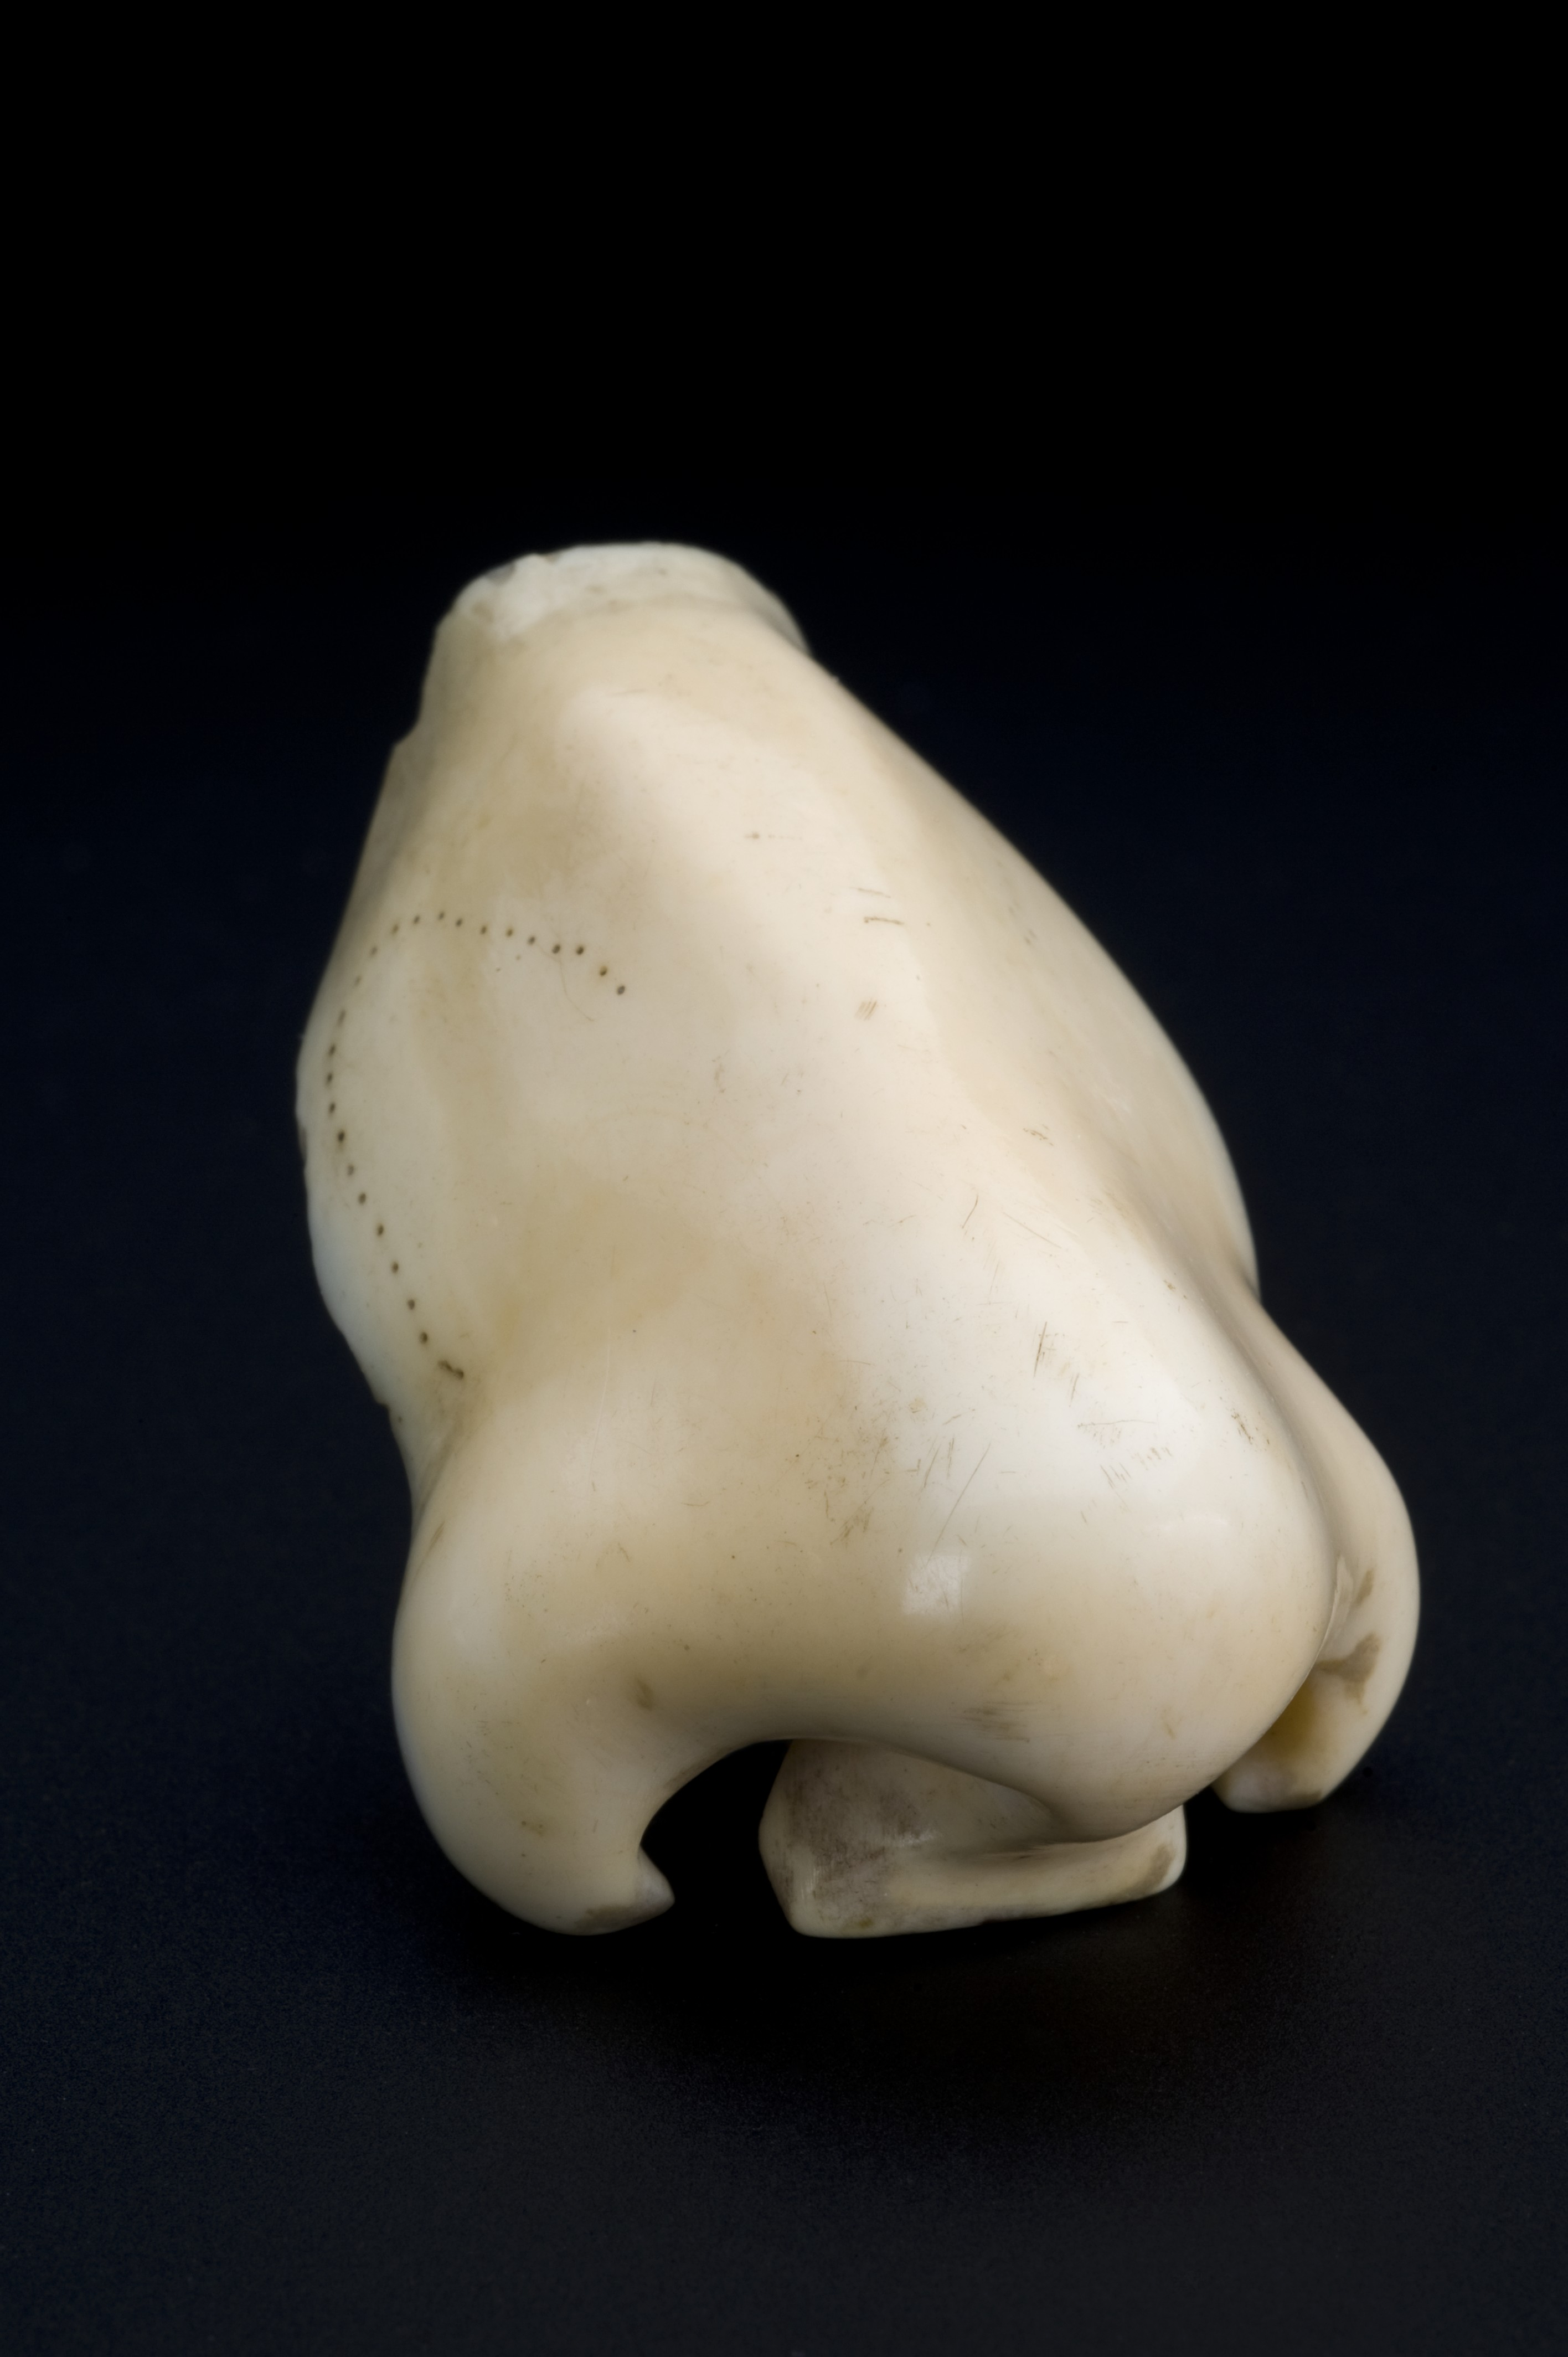 File:Ivory artificial nose, Europe, 1701-1800 Wellcome L0058564 jpg